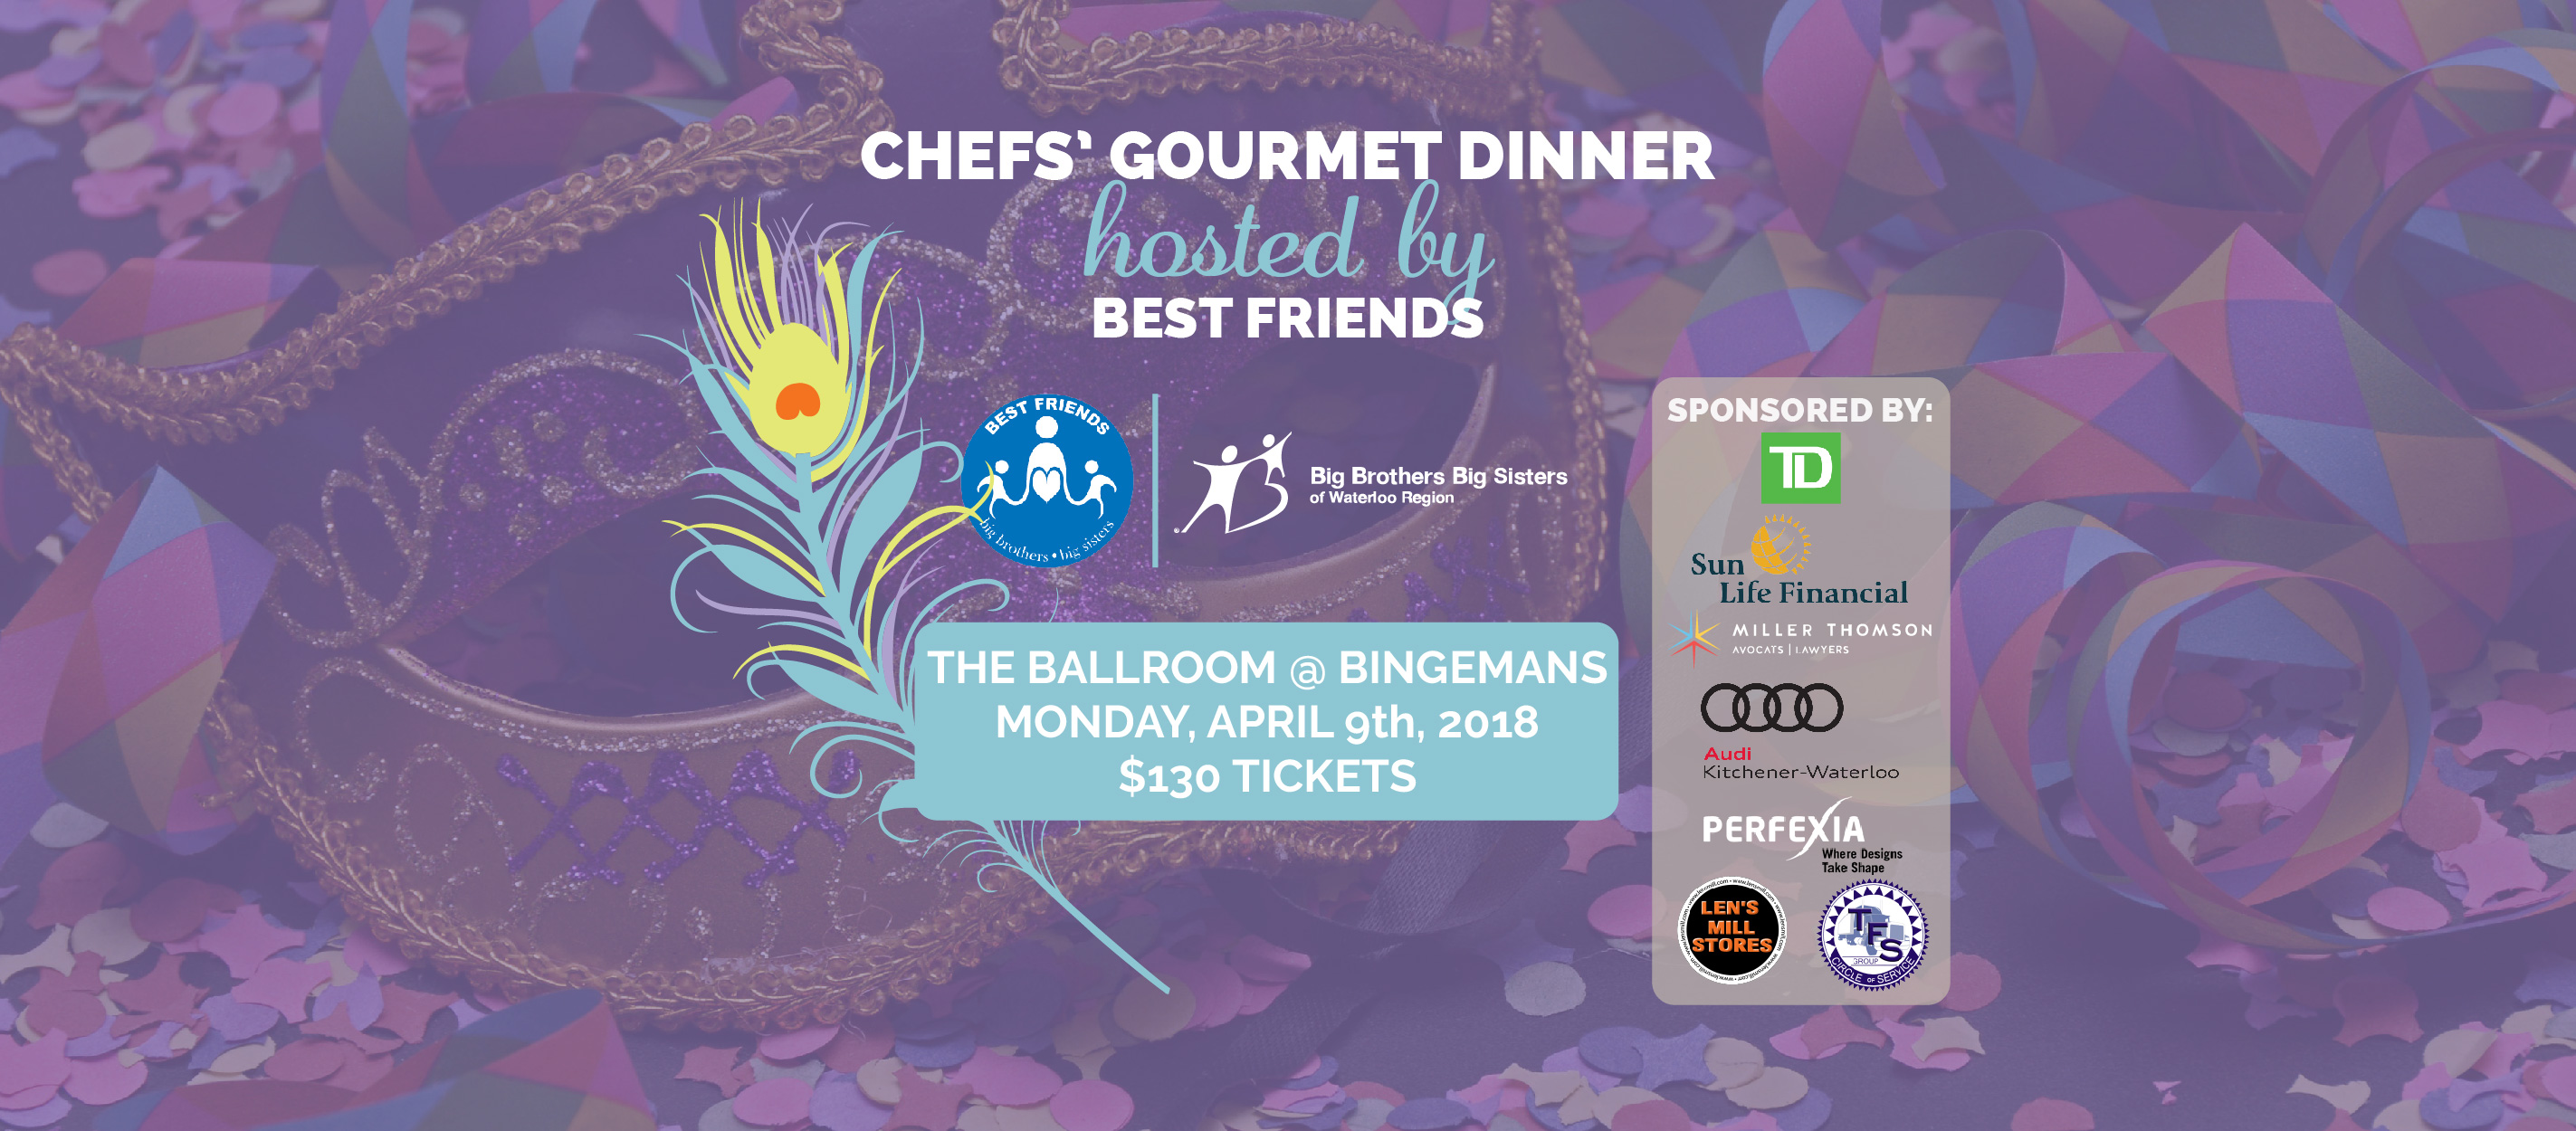 Home big brothers big sisters of canada - Chef gourmet 4000 ...